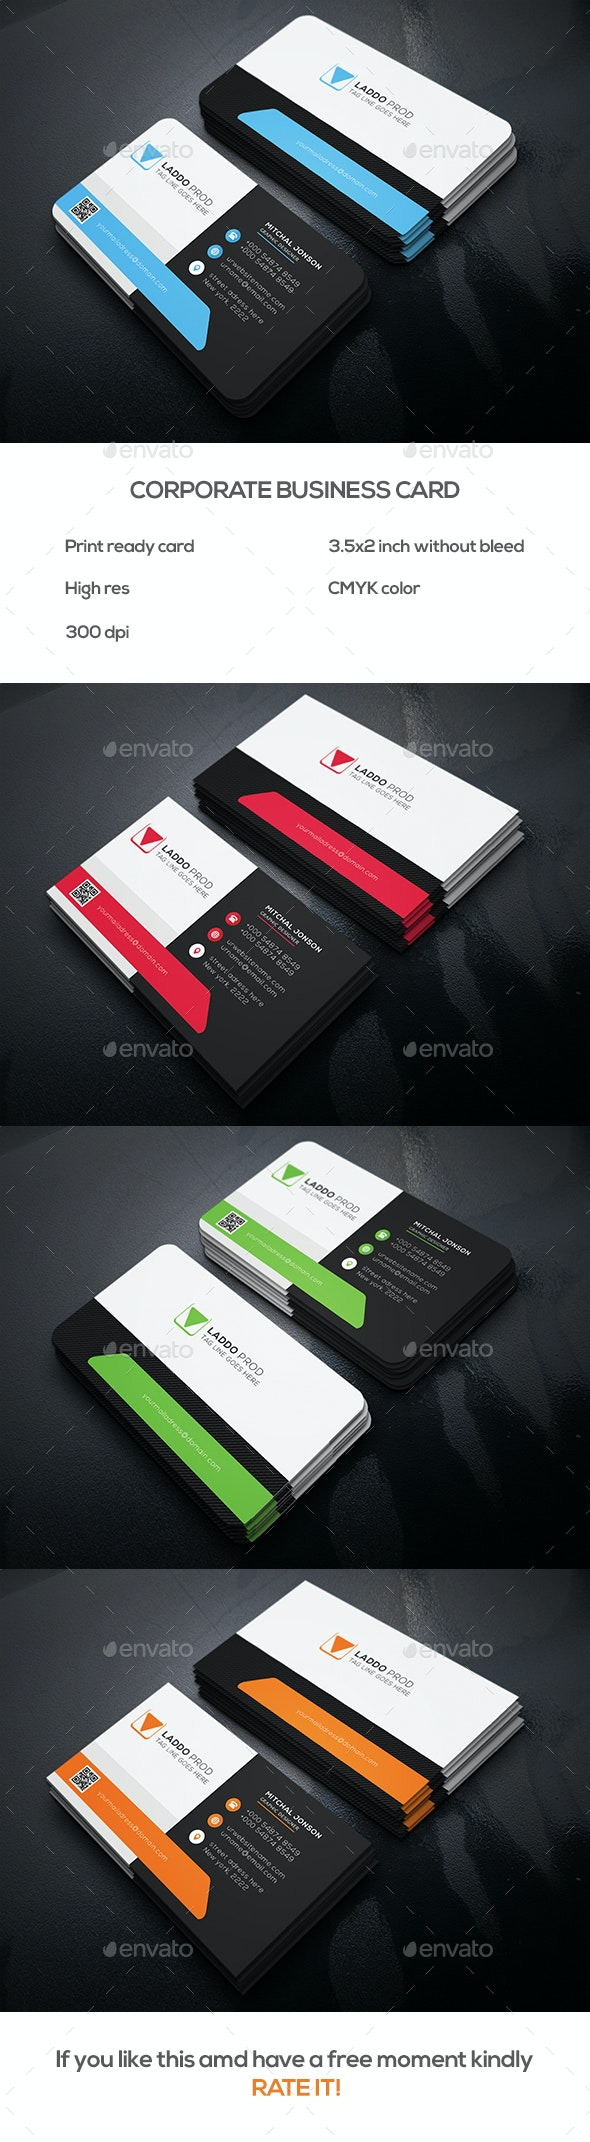 Corporate Business Card v1 - Business Cards Print Templates